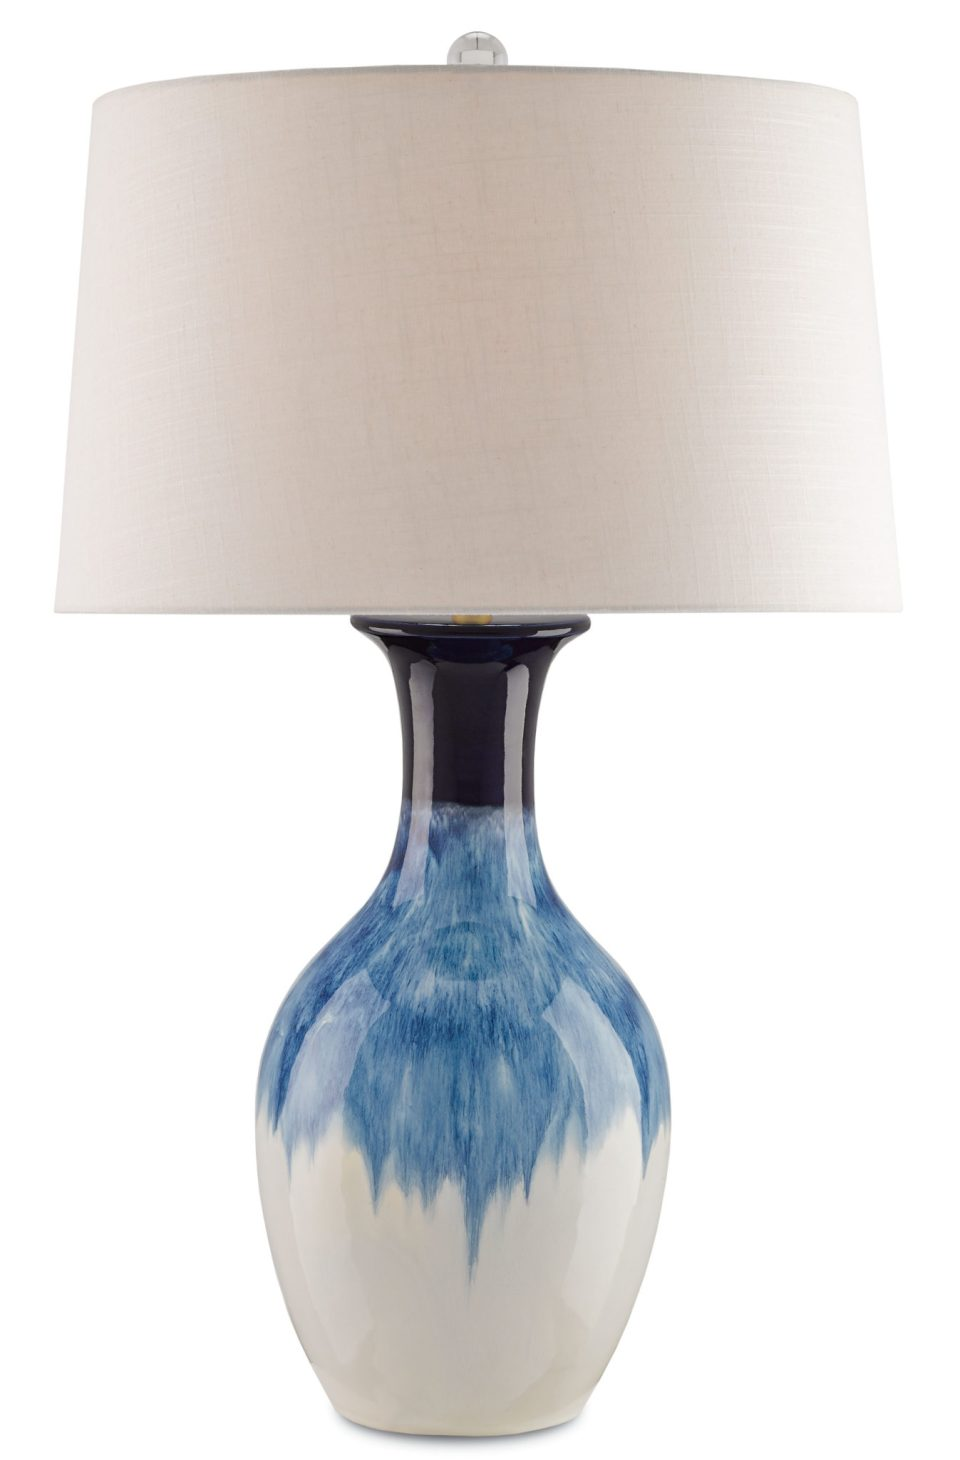 6226-960x1460 5 Modern Spring Lighting Options for a Black Southern Belle